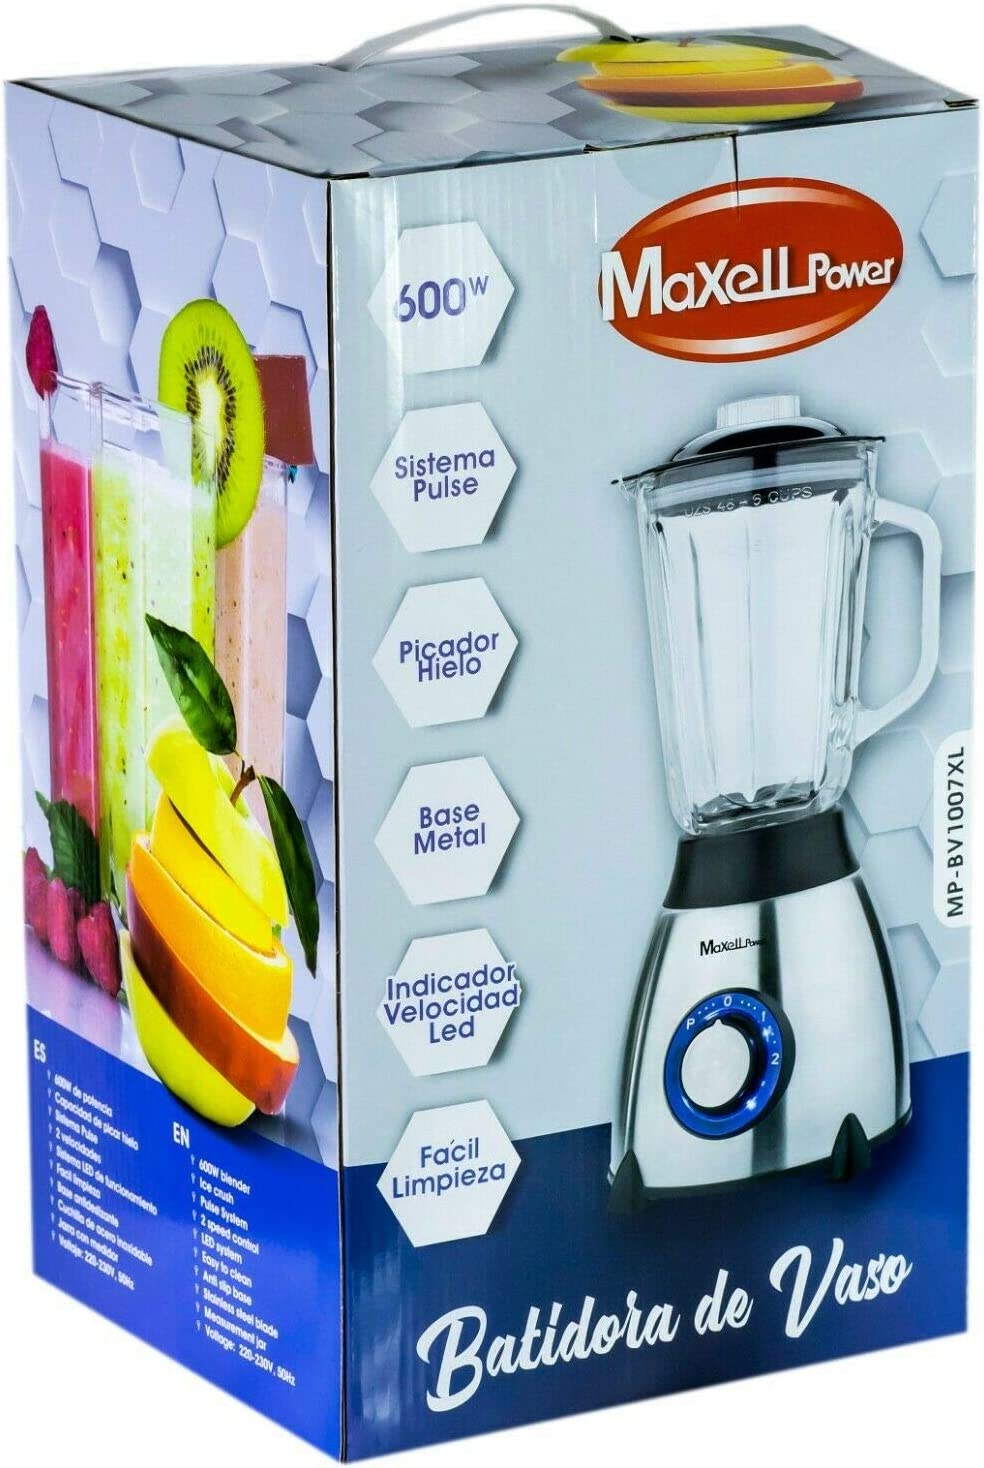 MAXELLPOWER BATIDORA DE Vaso ELECTRICA 600W Base Acero Inoxidable ...